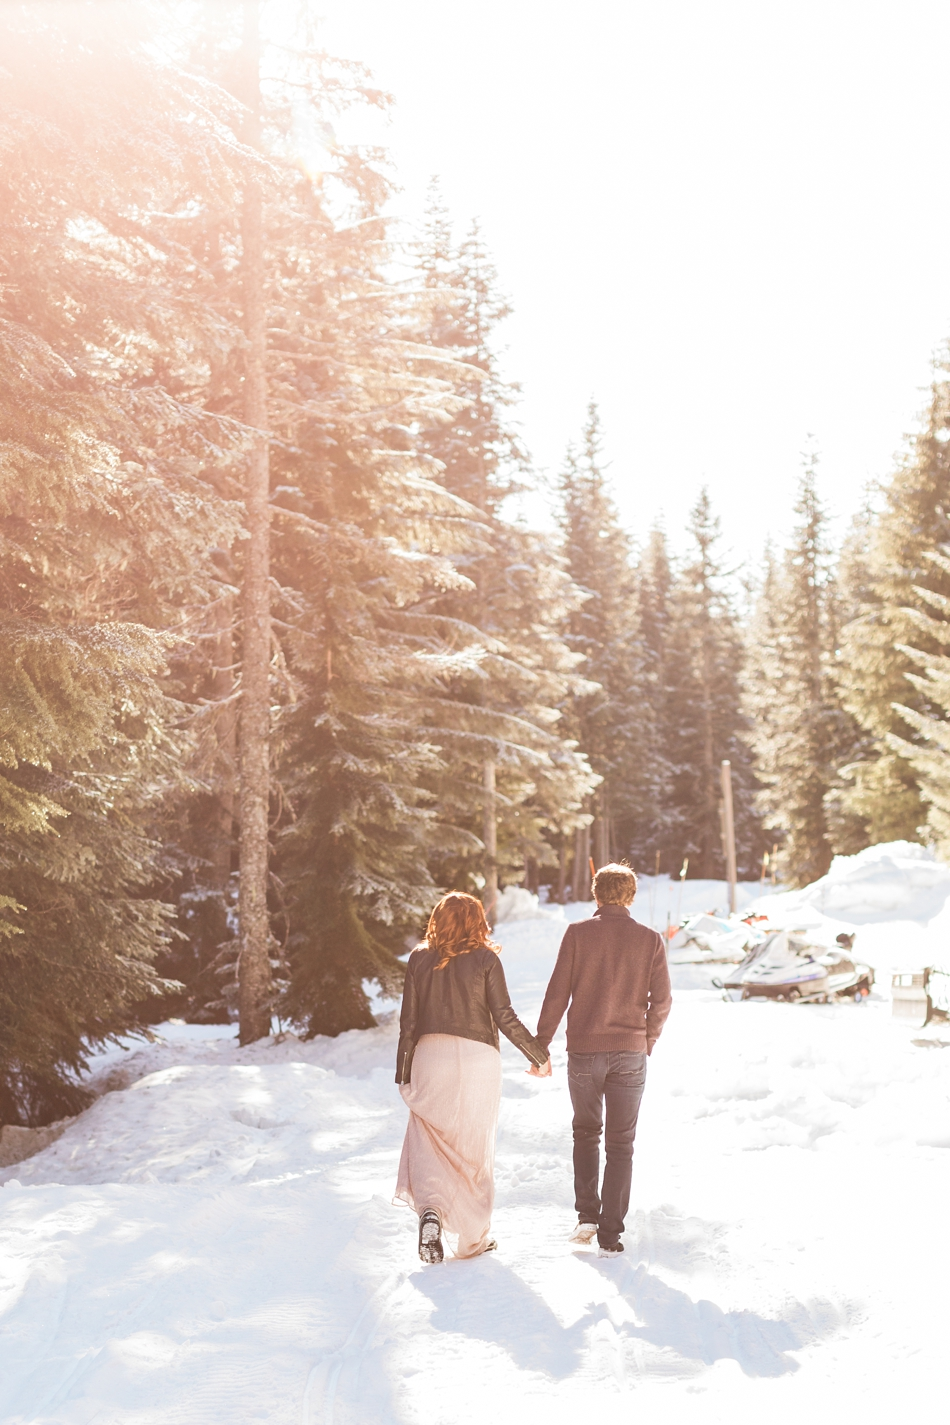 An engaged couple holds hands in the snow during their Steven's Pass engagement shoot for their dreamy DIY wedding at Dairyland in Snohomish, a wedding venue near Seattle. | Joanna Monger Photography | Snohomish & Seattle Photographer